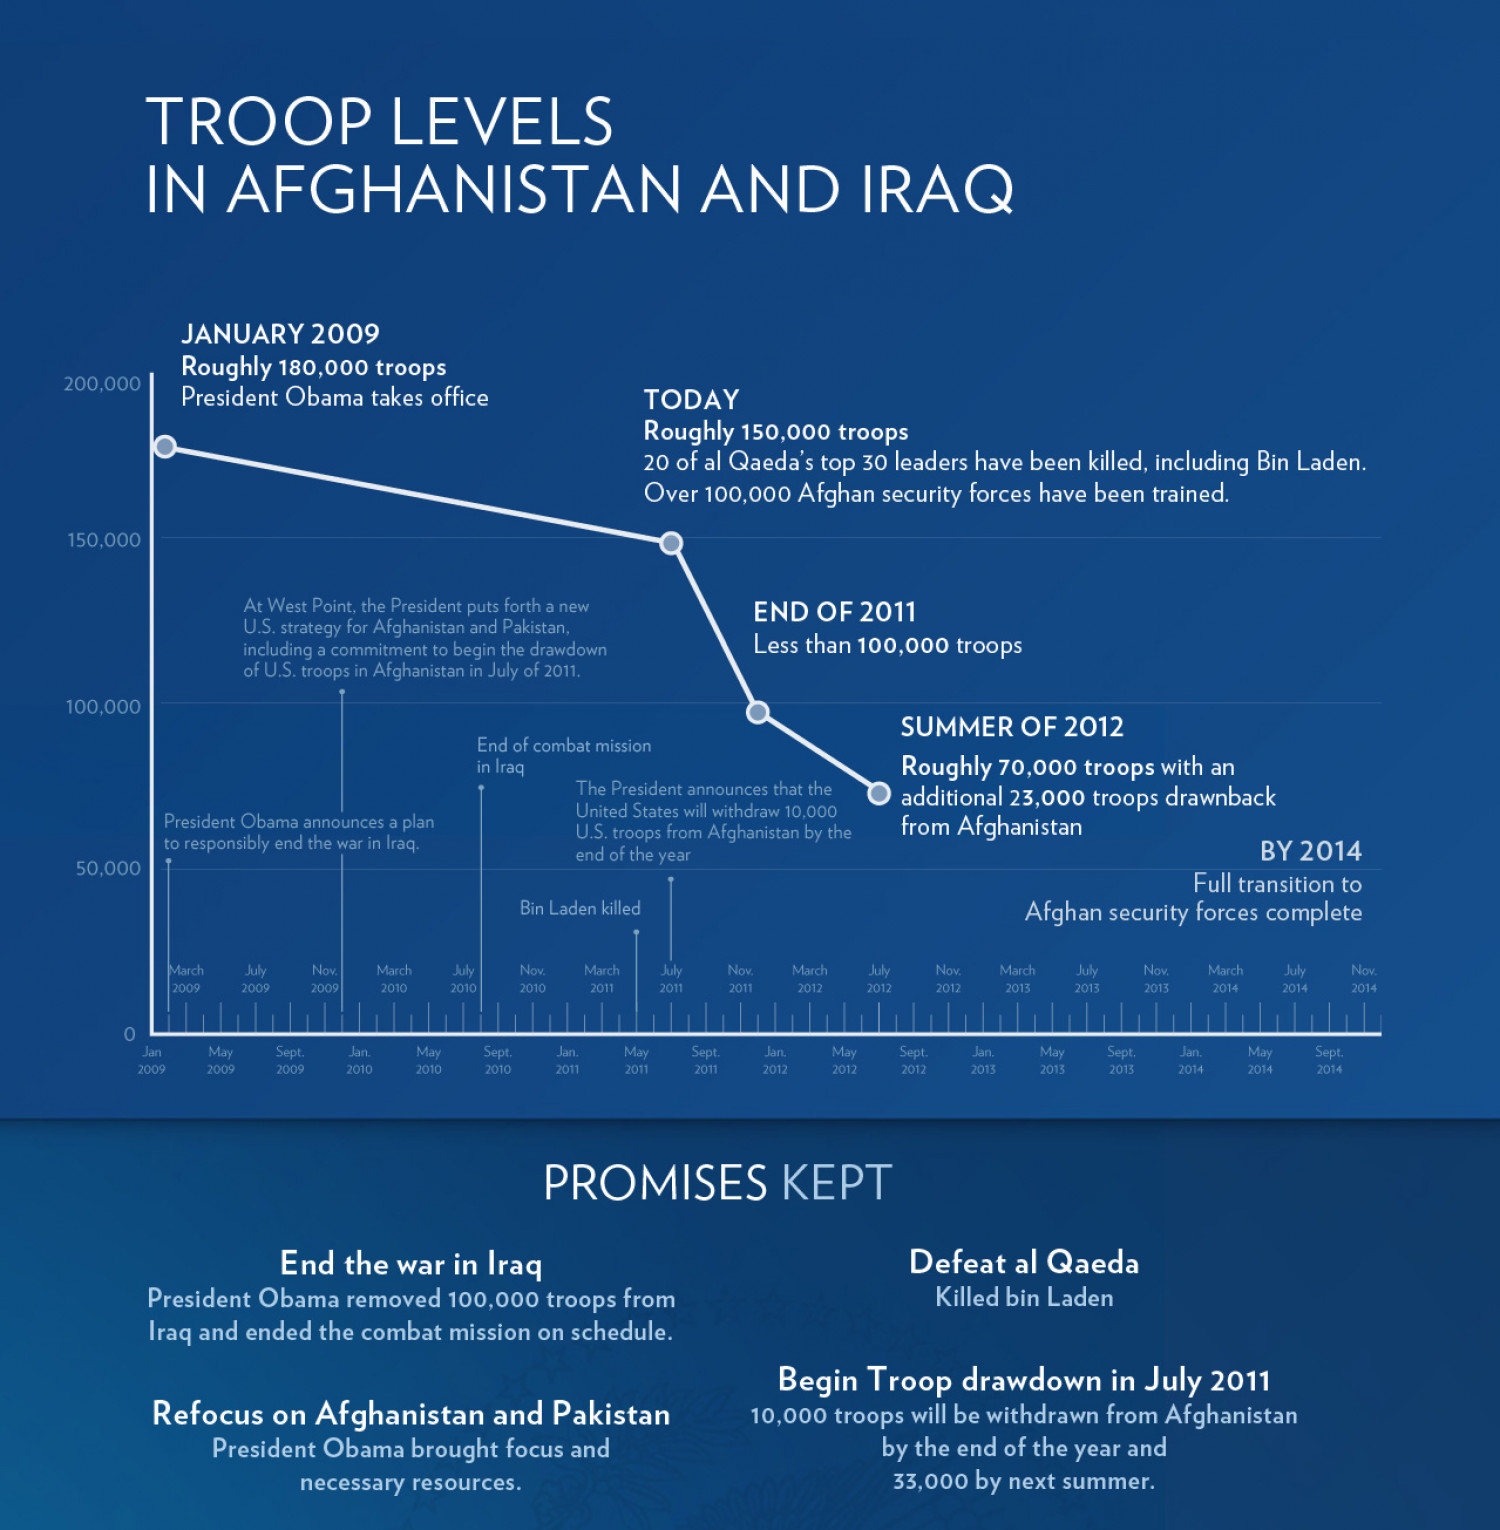 Troop Levels in Afghanistan and Iraq Infographic